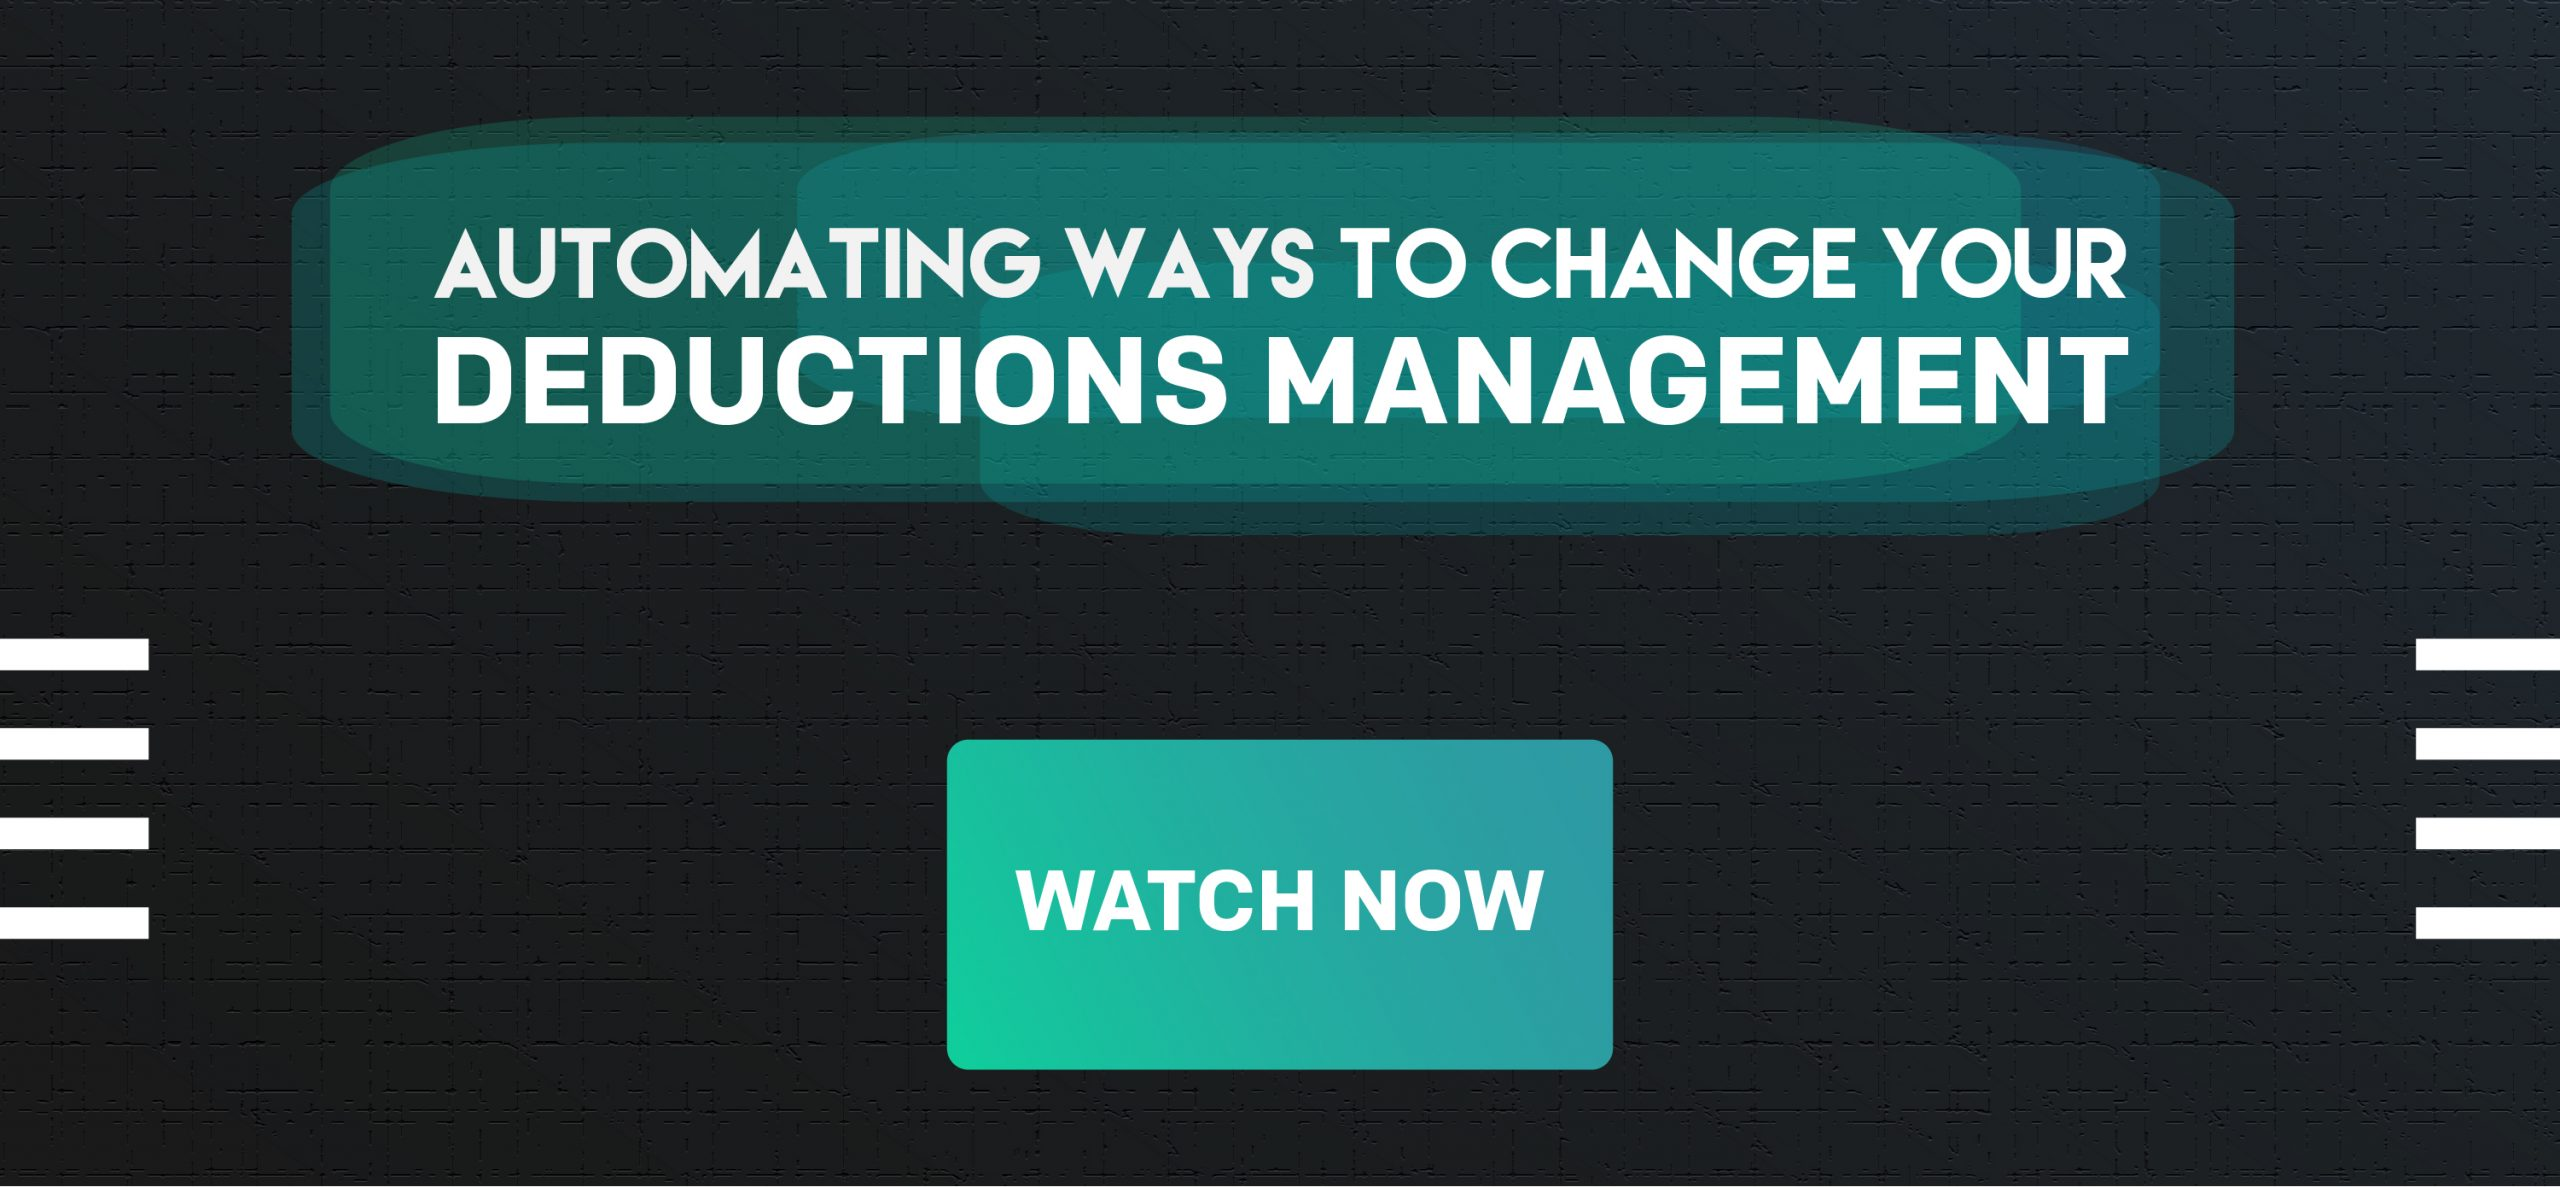 Evolution of Deductions Management CTA